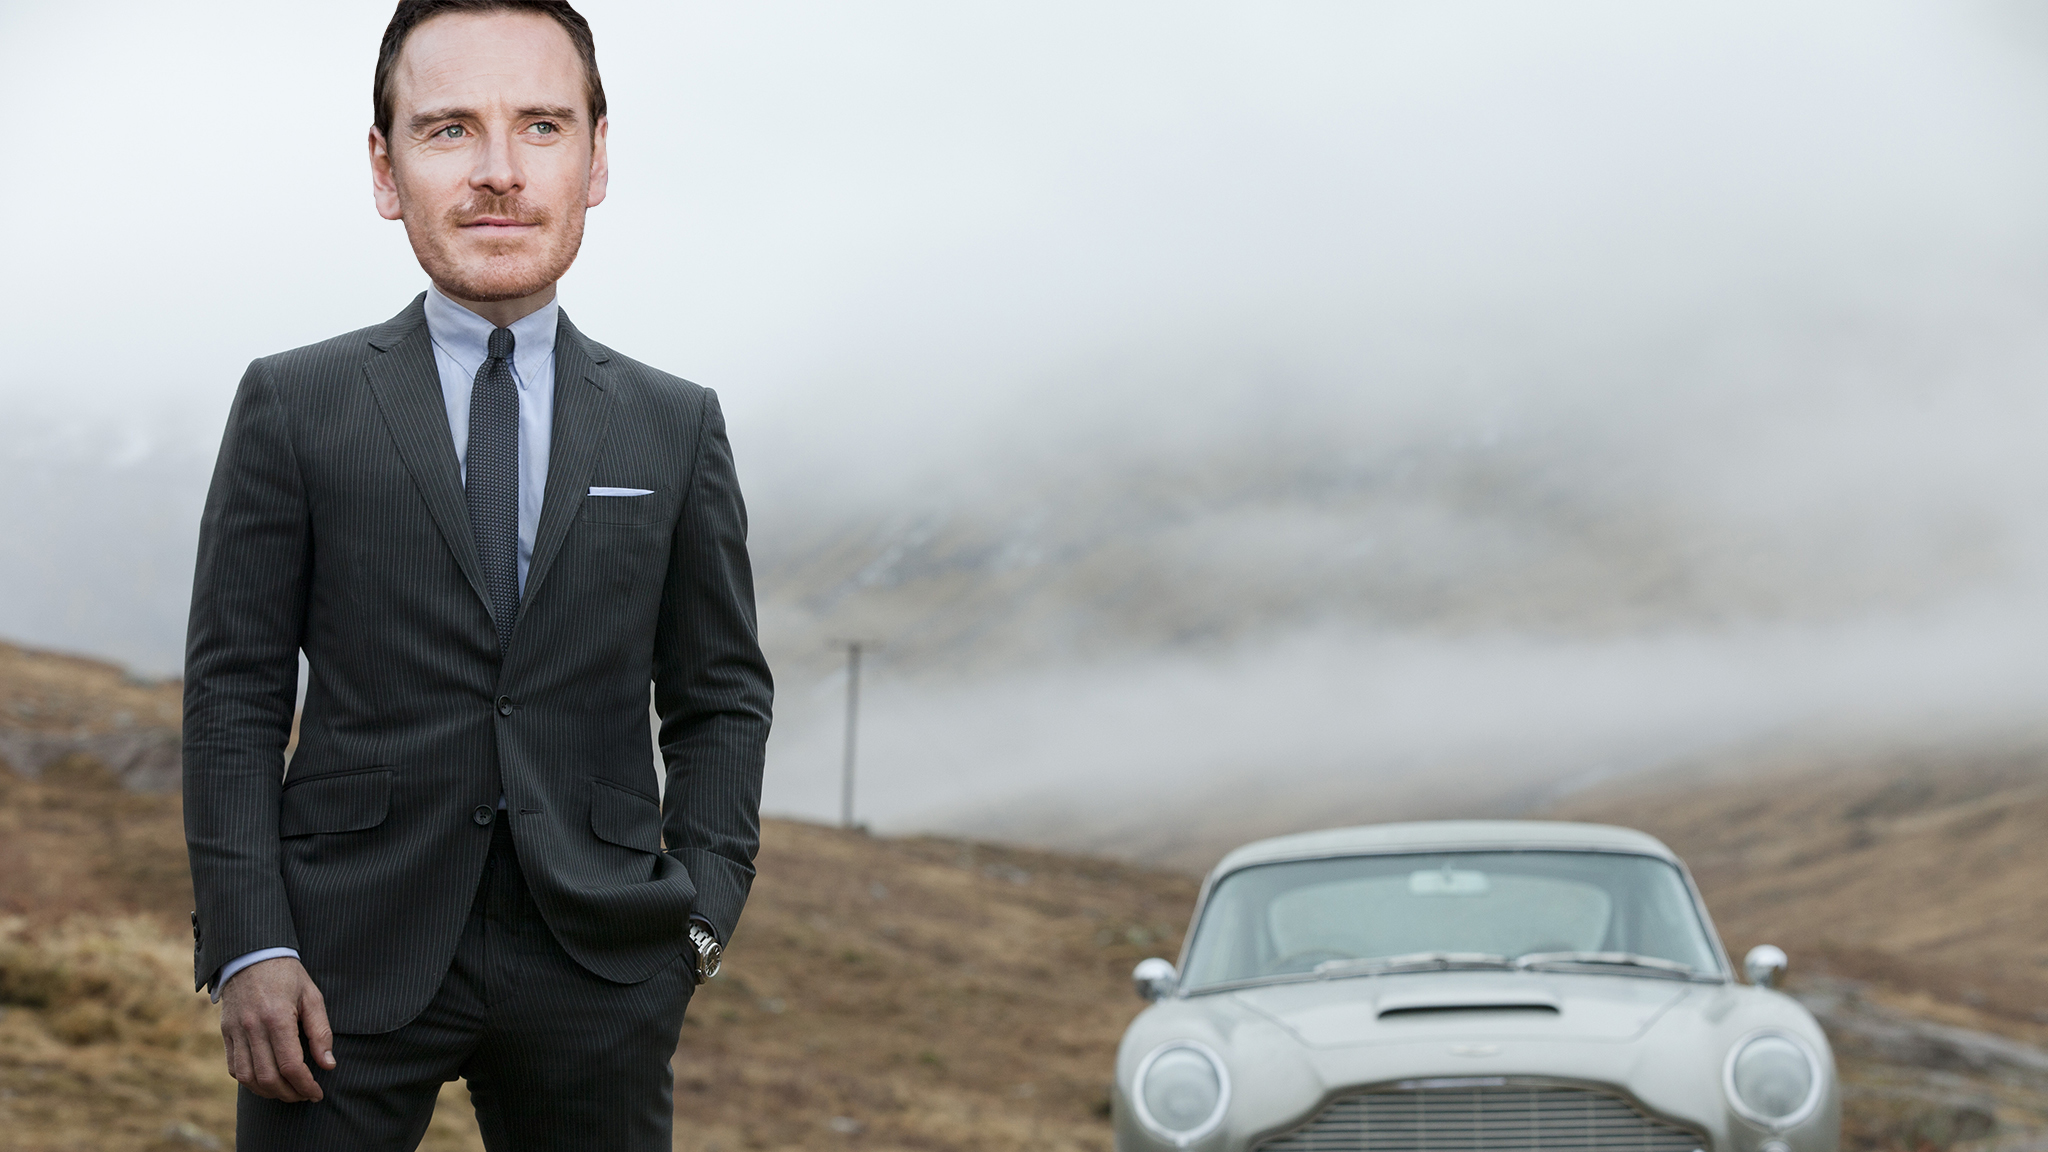 Michael Fassbender as James Bond